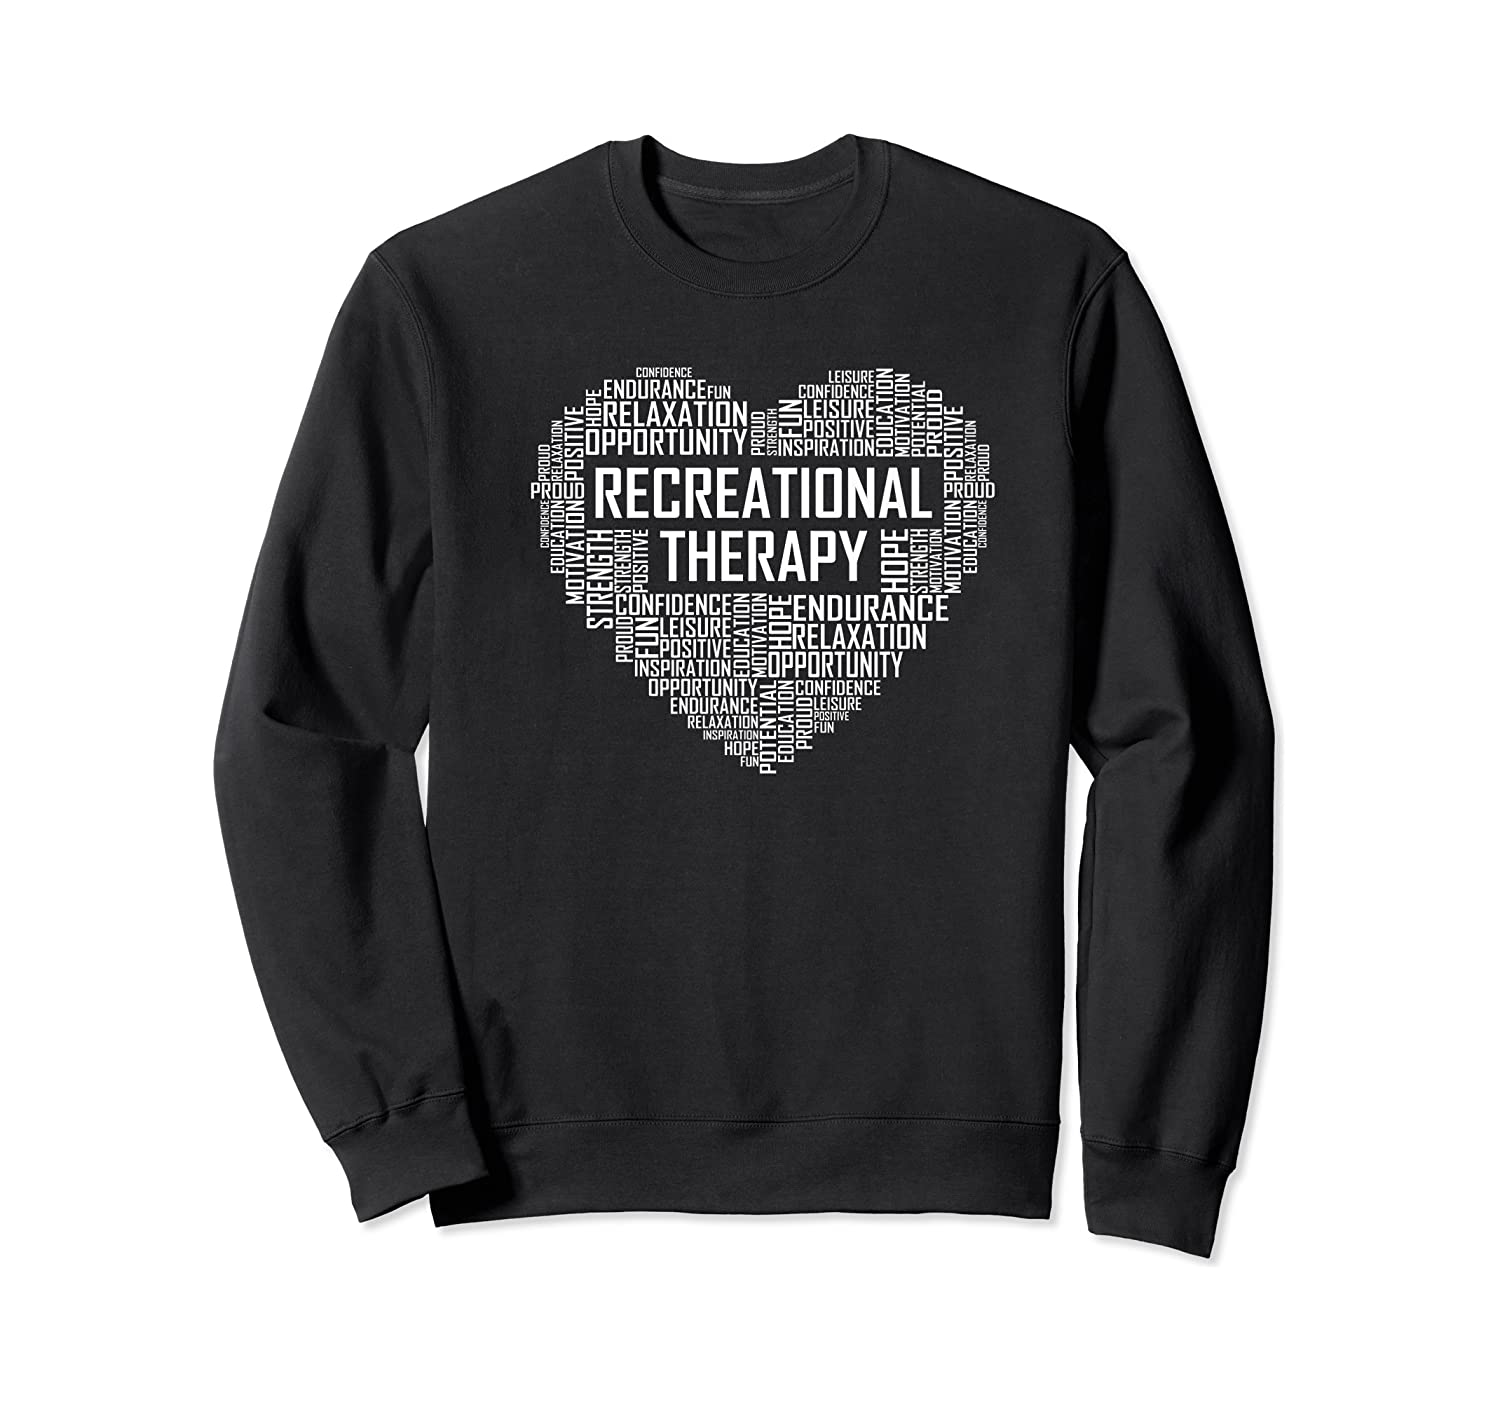 Recreational Therapy Heart Gift Therapist Rt Month Gifts Premium T-shirt Crewneck Sweater